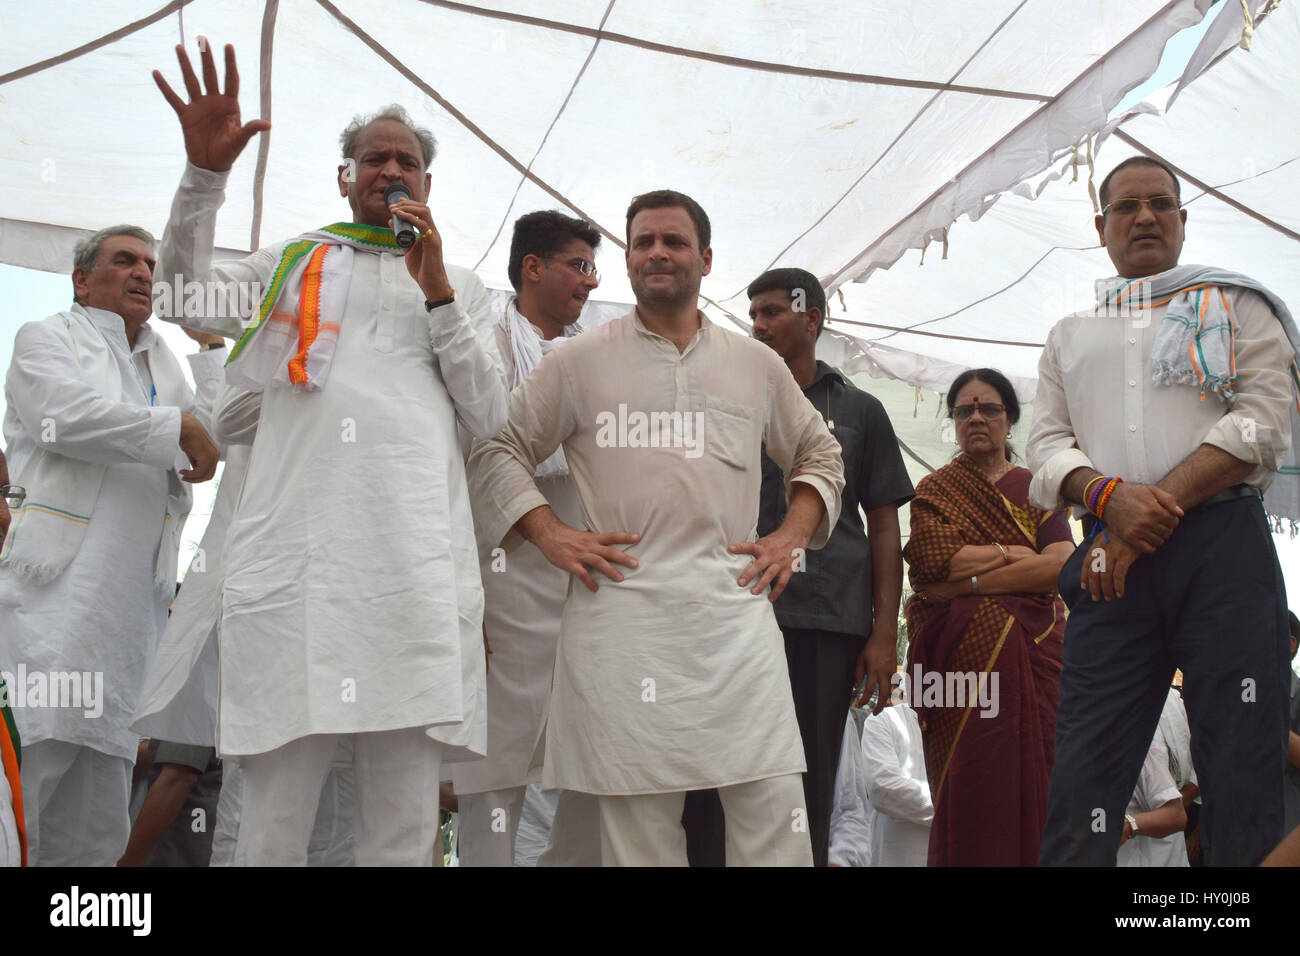 Indian national congress party members, rahul gandhi, ashok gehlot, india, asia - Stock Image